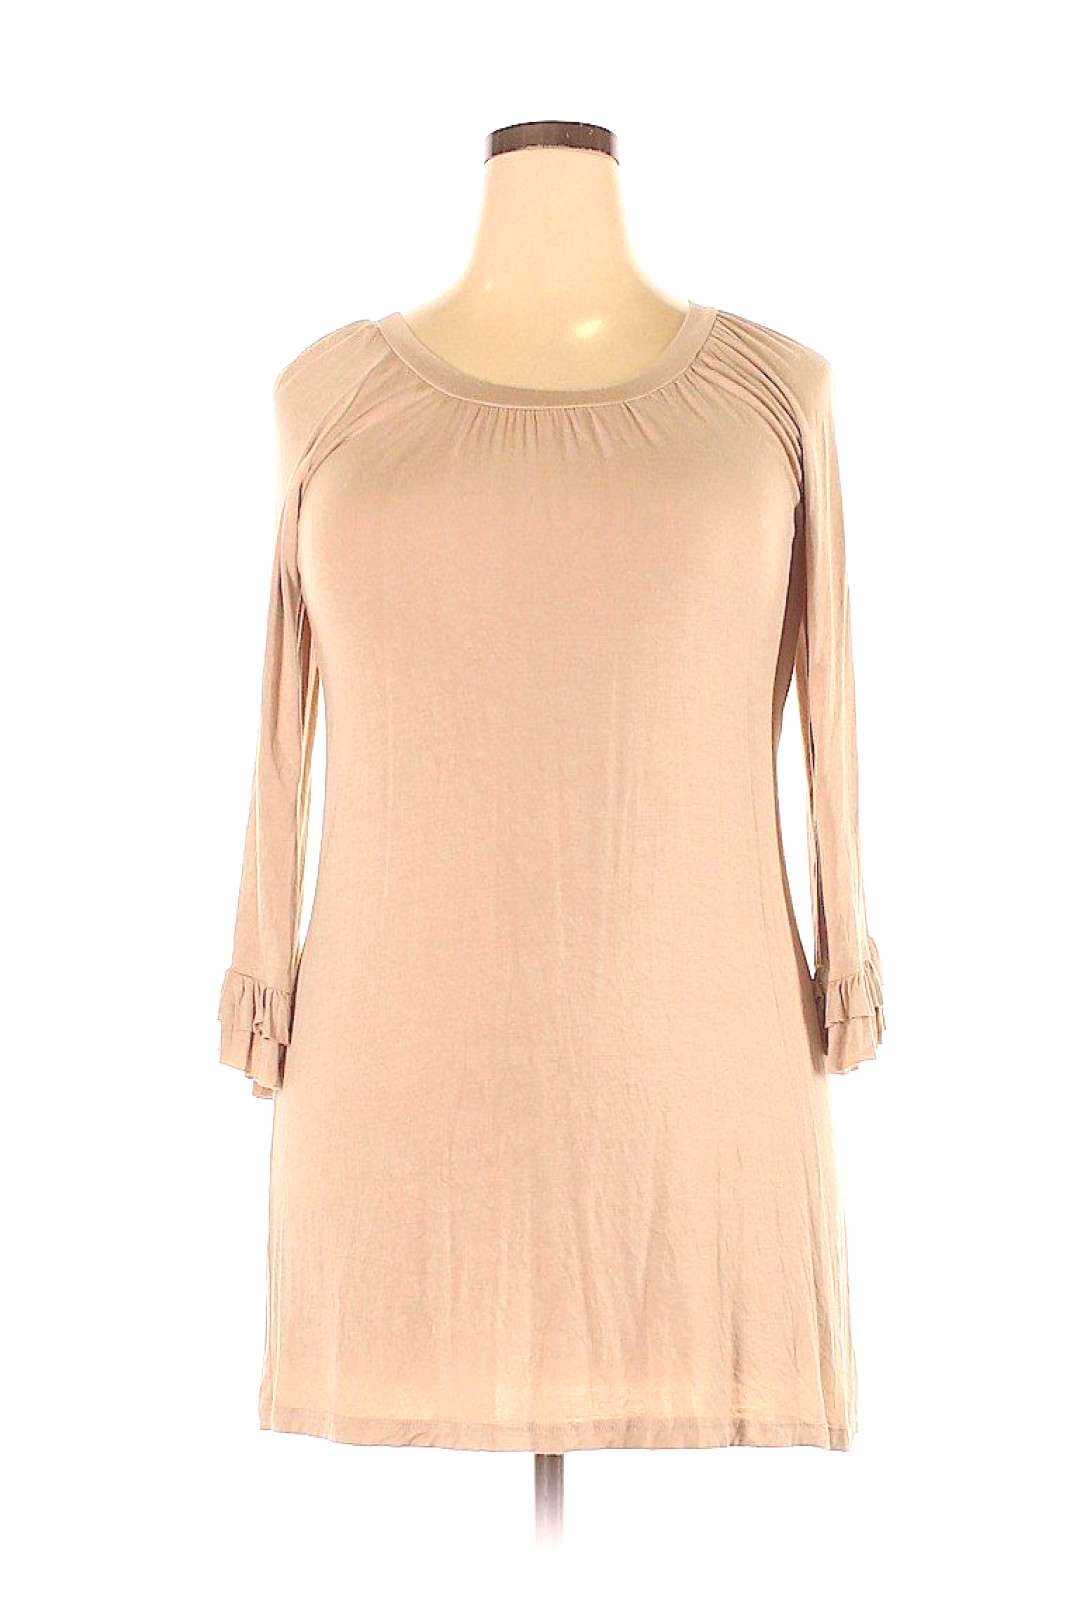 GIDDY UP GLAMOUR Casual Dress - Shift Tan Solid Dresses - Used - Size 2X